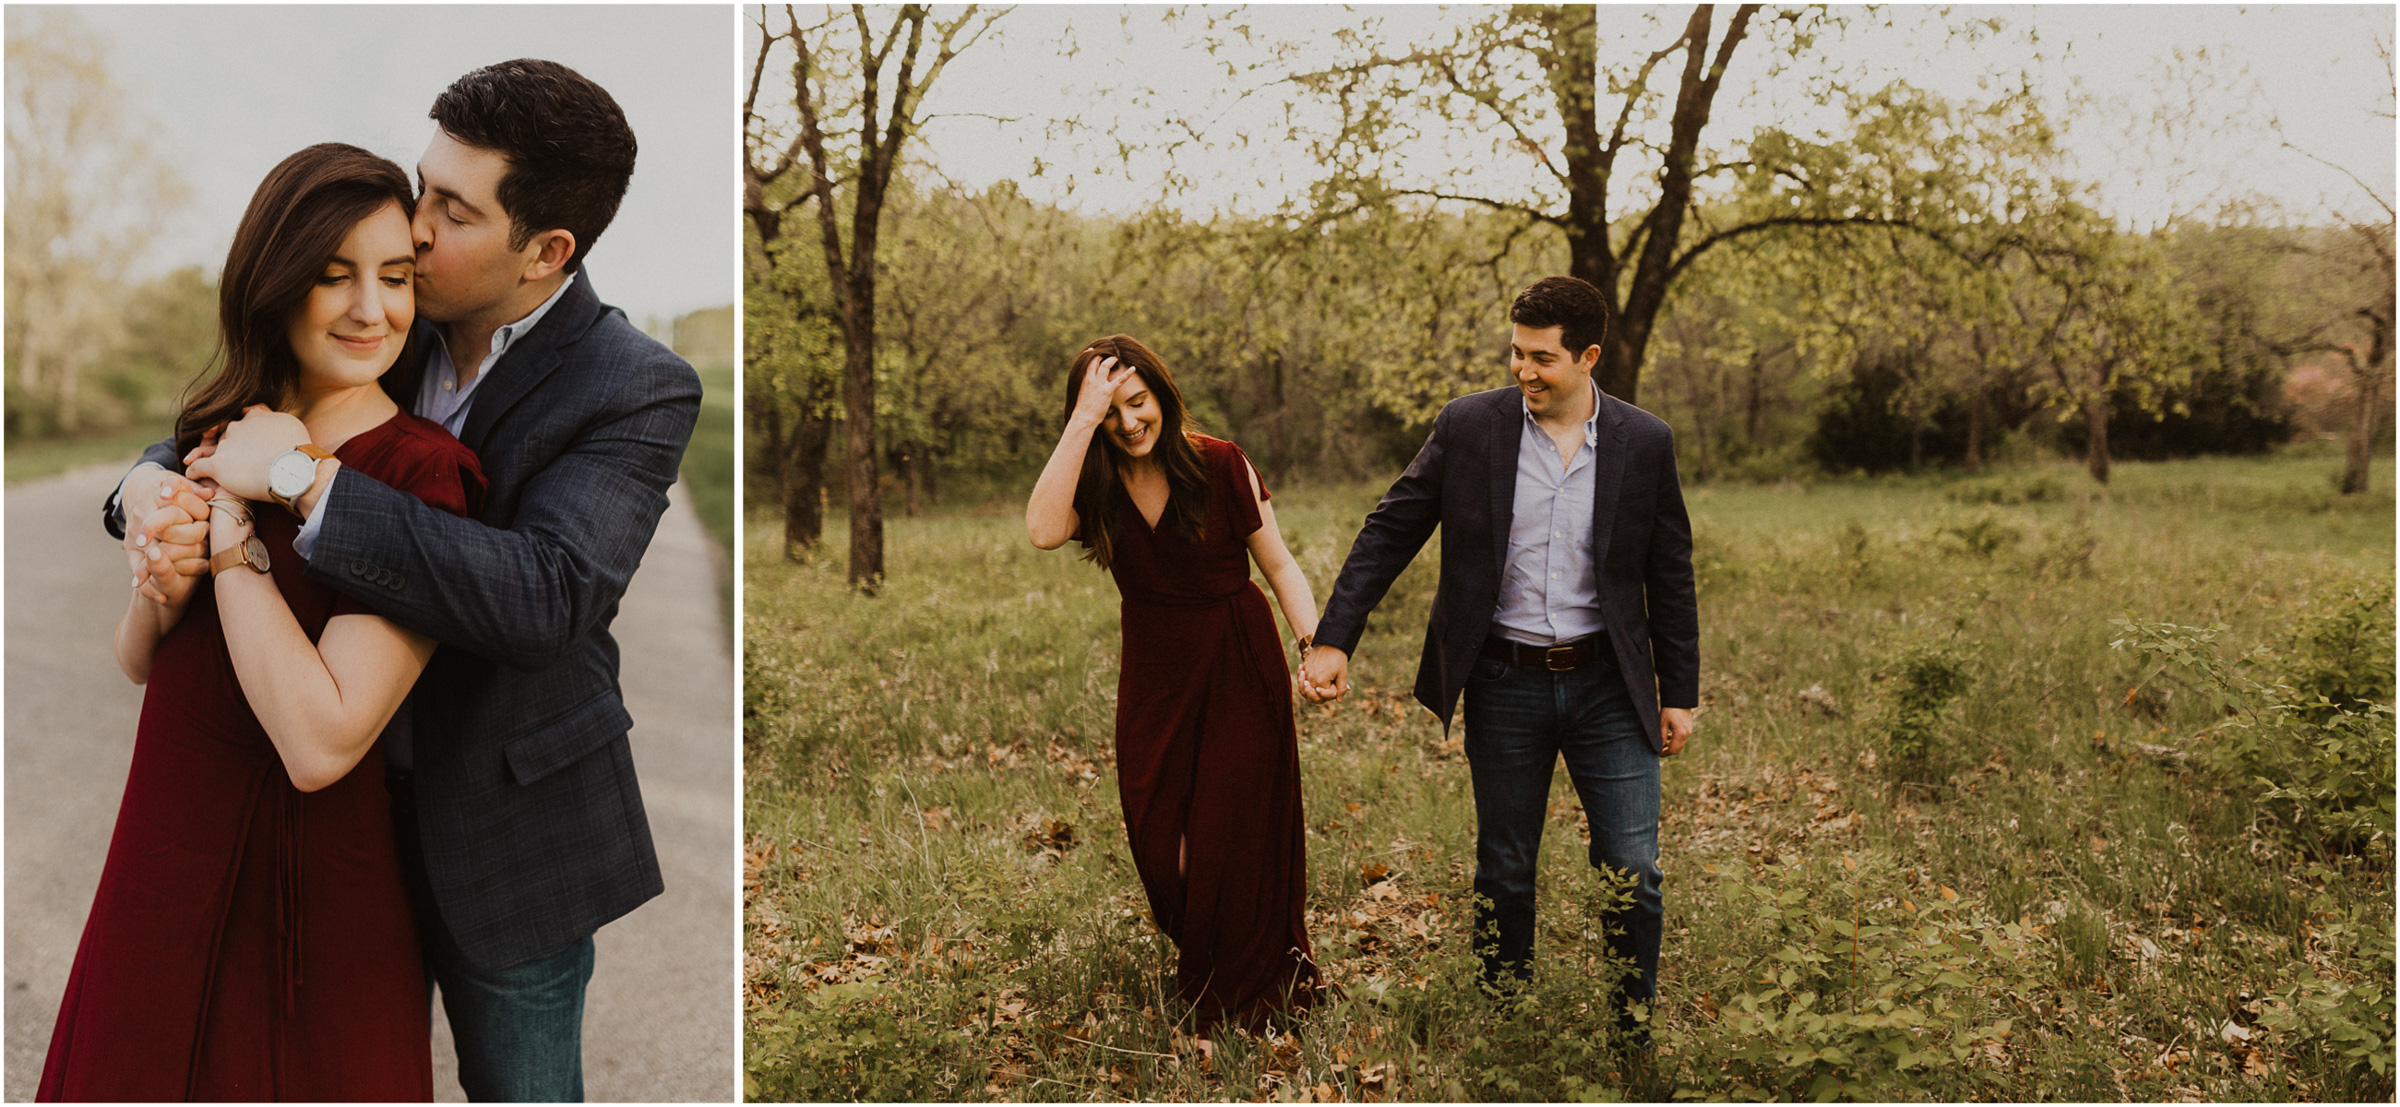 alyssa barletter photography shawnee mission park engagement session photographer spring fields-12.jpg